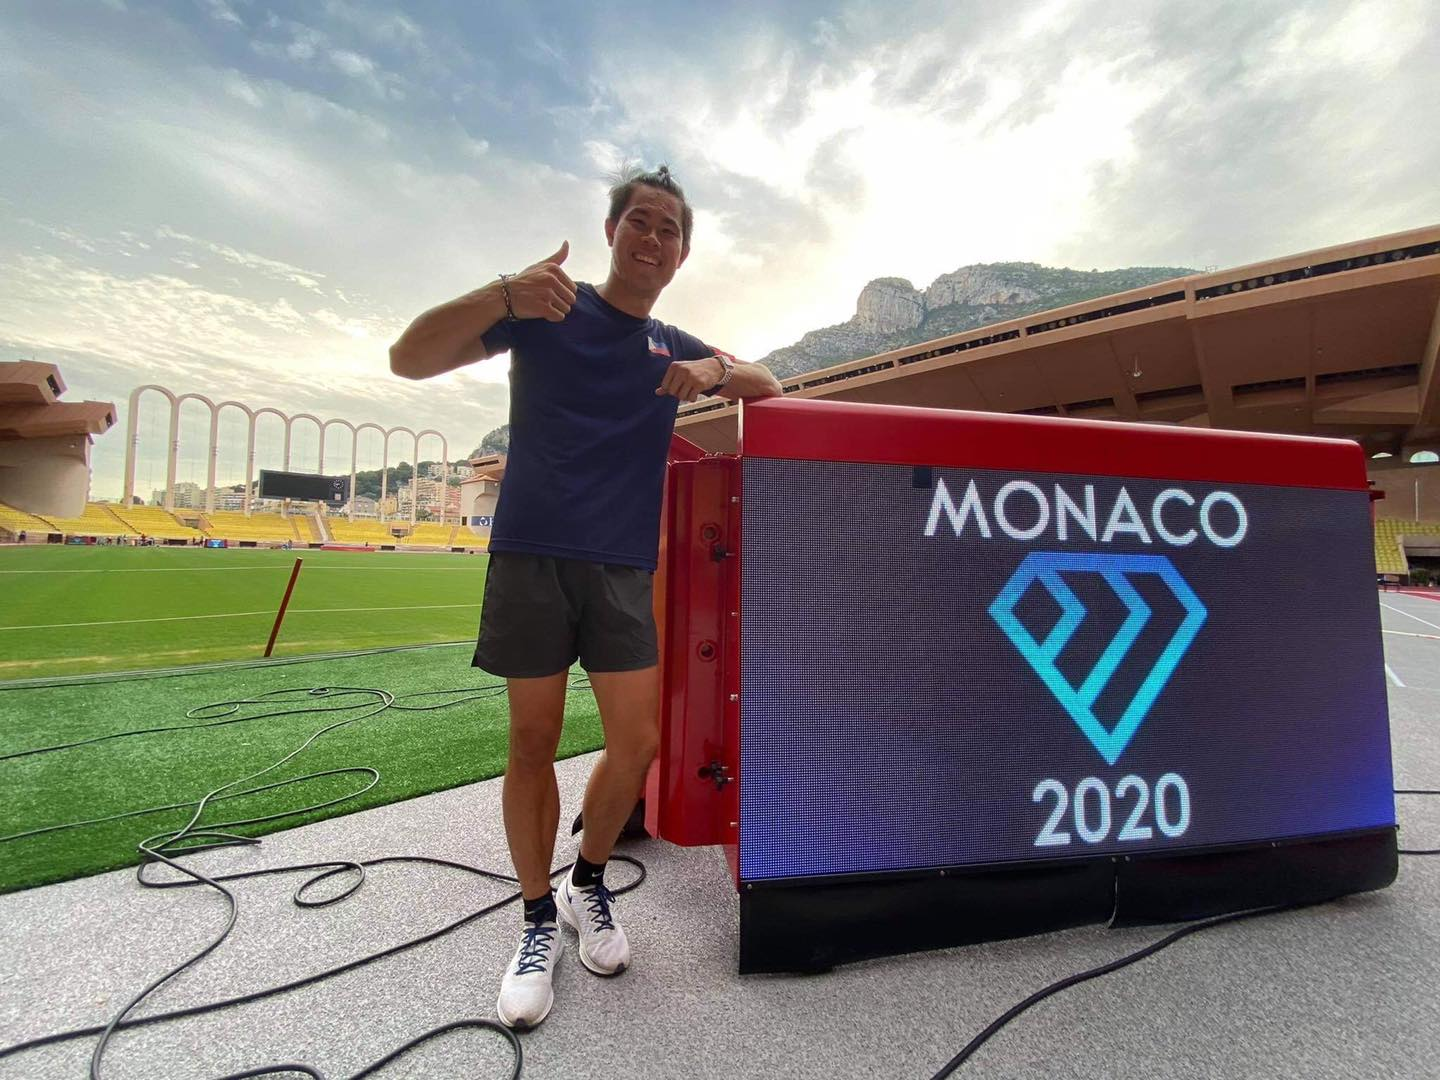 EJ Obiena at the Diamond League Athletics Meeting Monaco